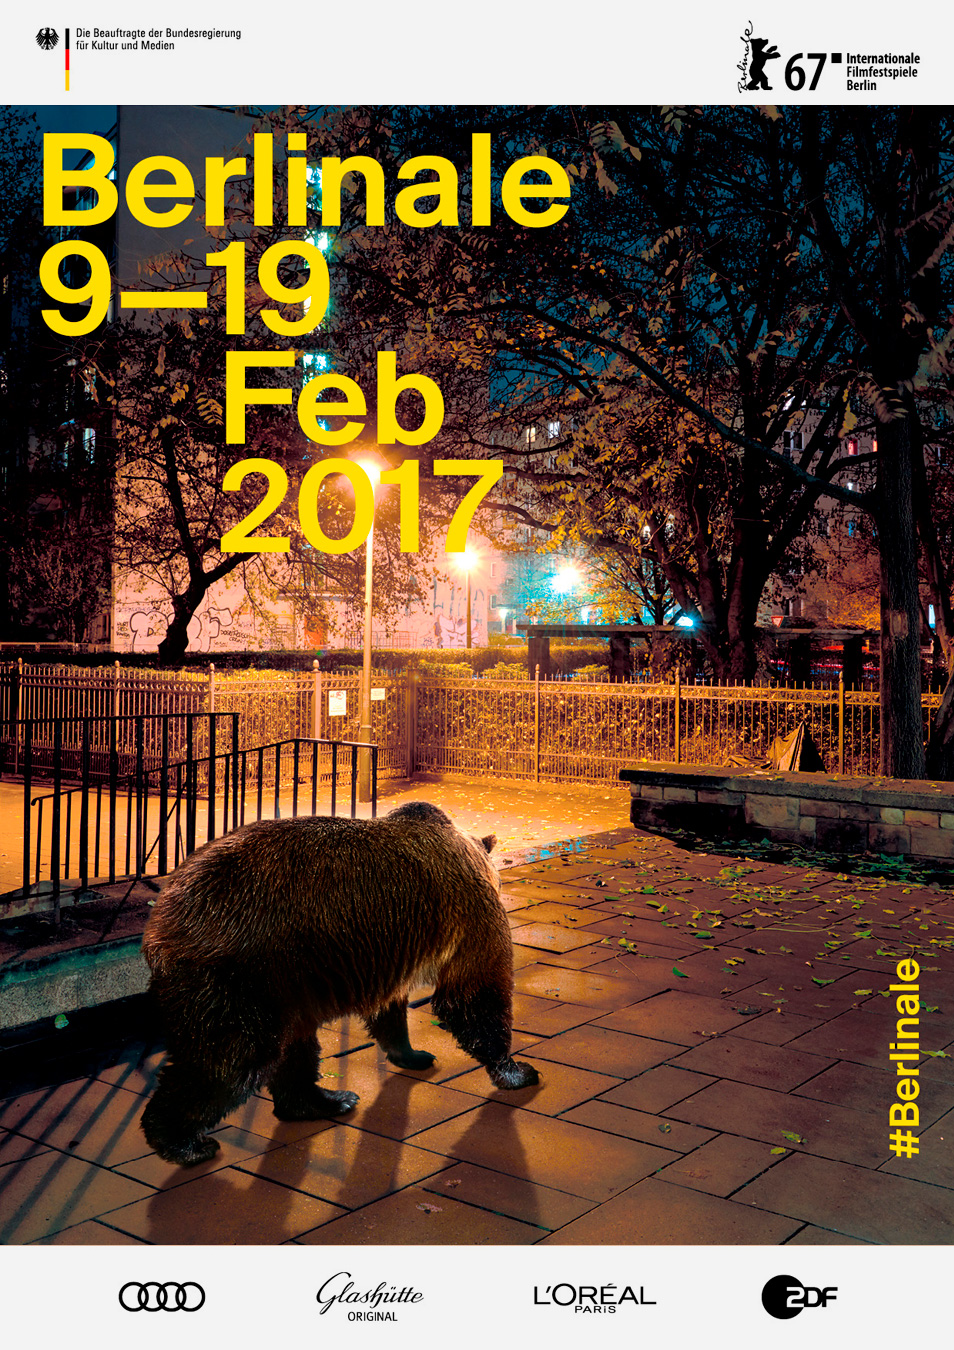 Berlinale Plakat 2017 Keyvisual Design